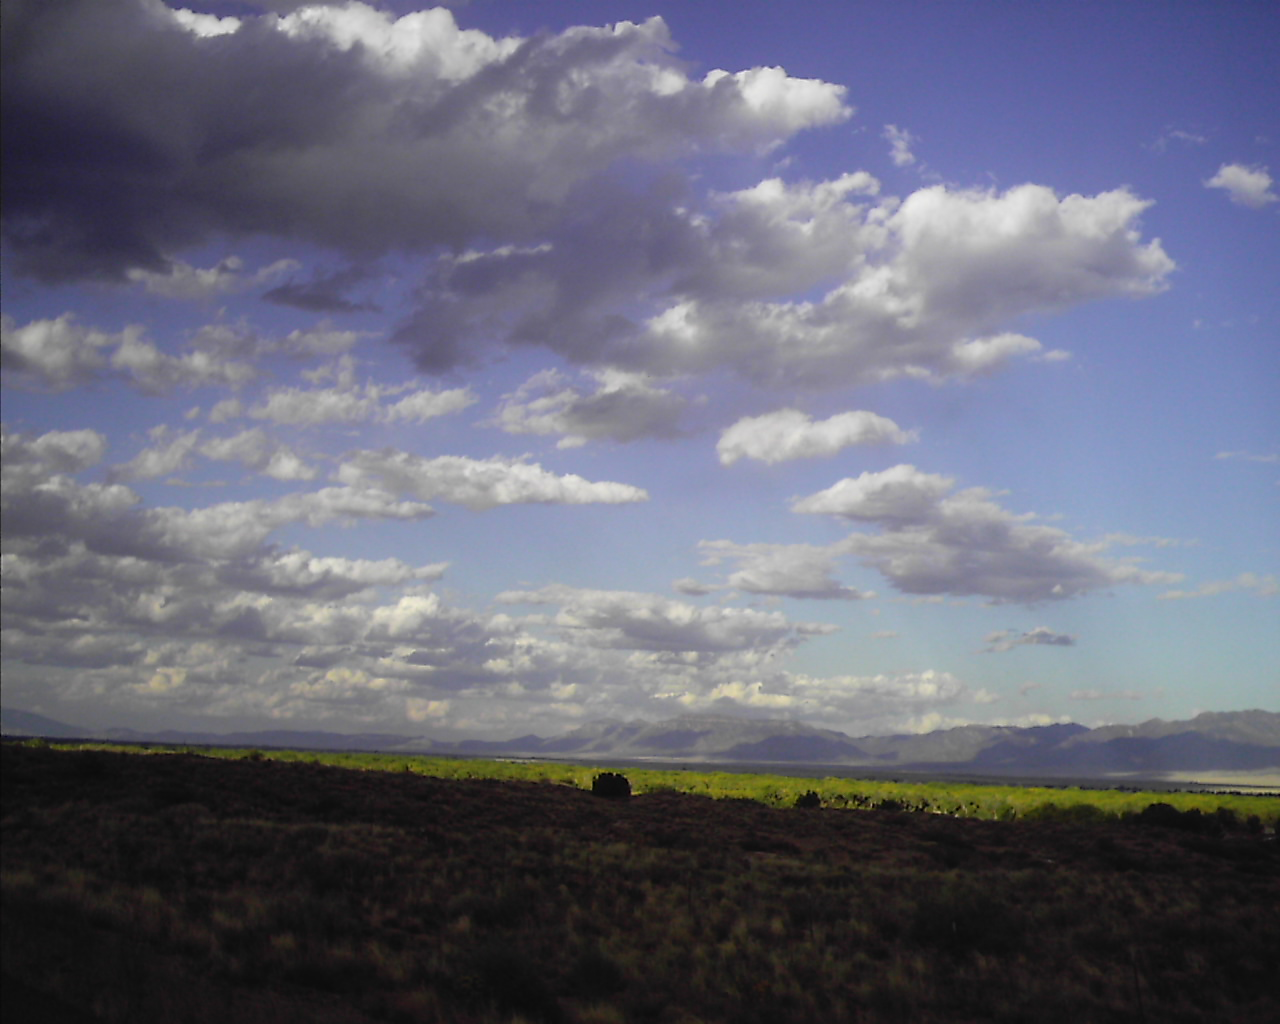 More October skies in New Mexico